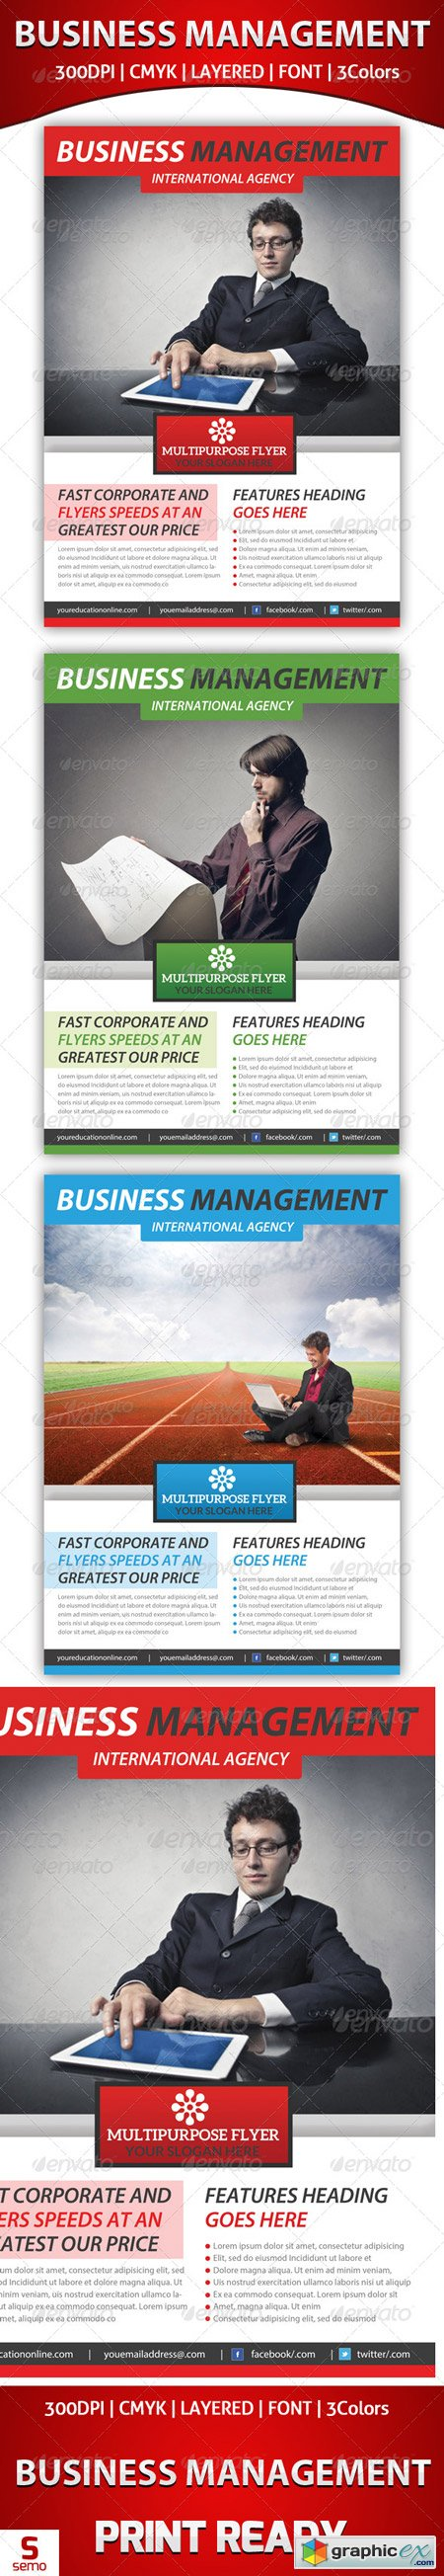 Business Management Flyer Template